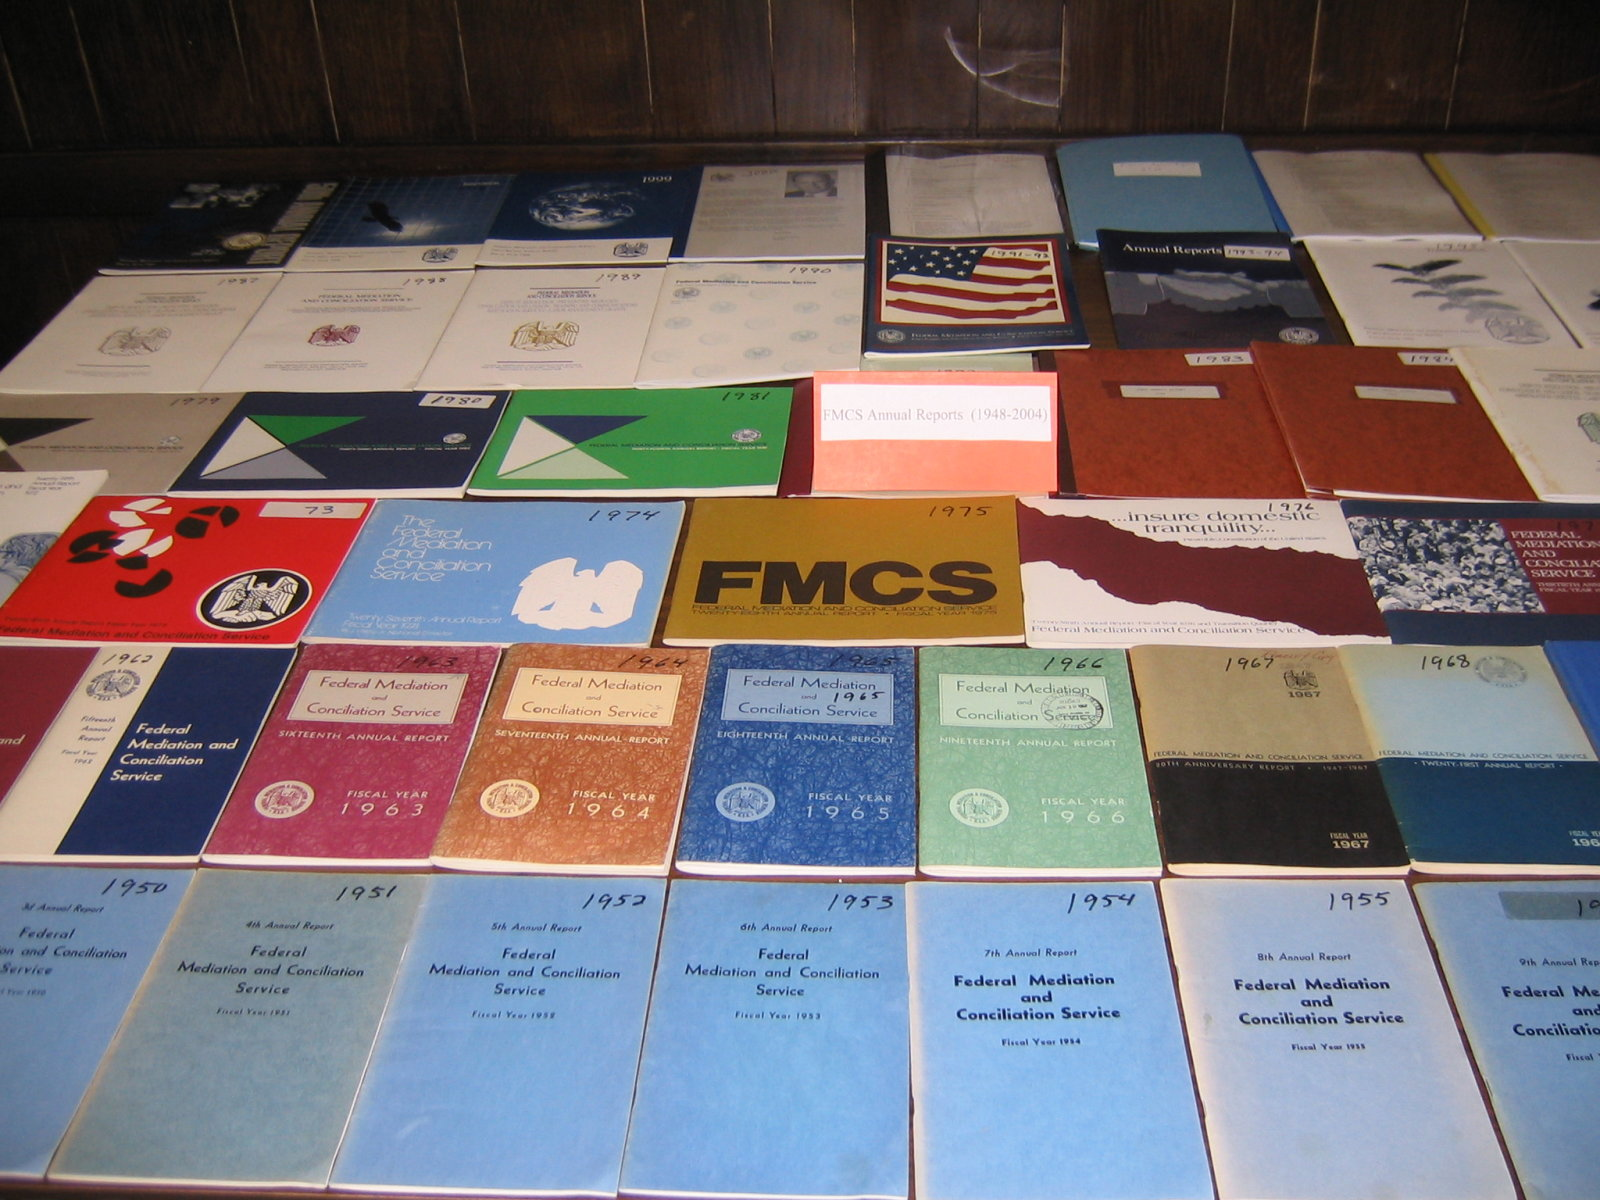 FMCS Annual Reports from 1948 to 2005